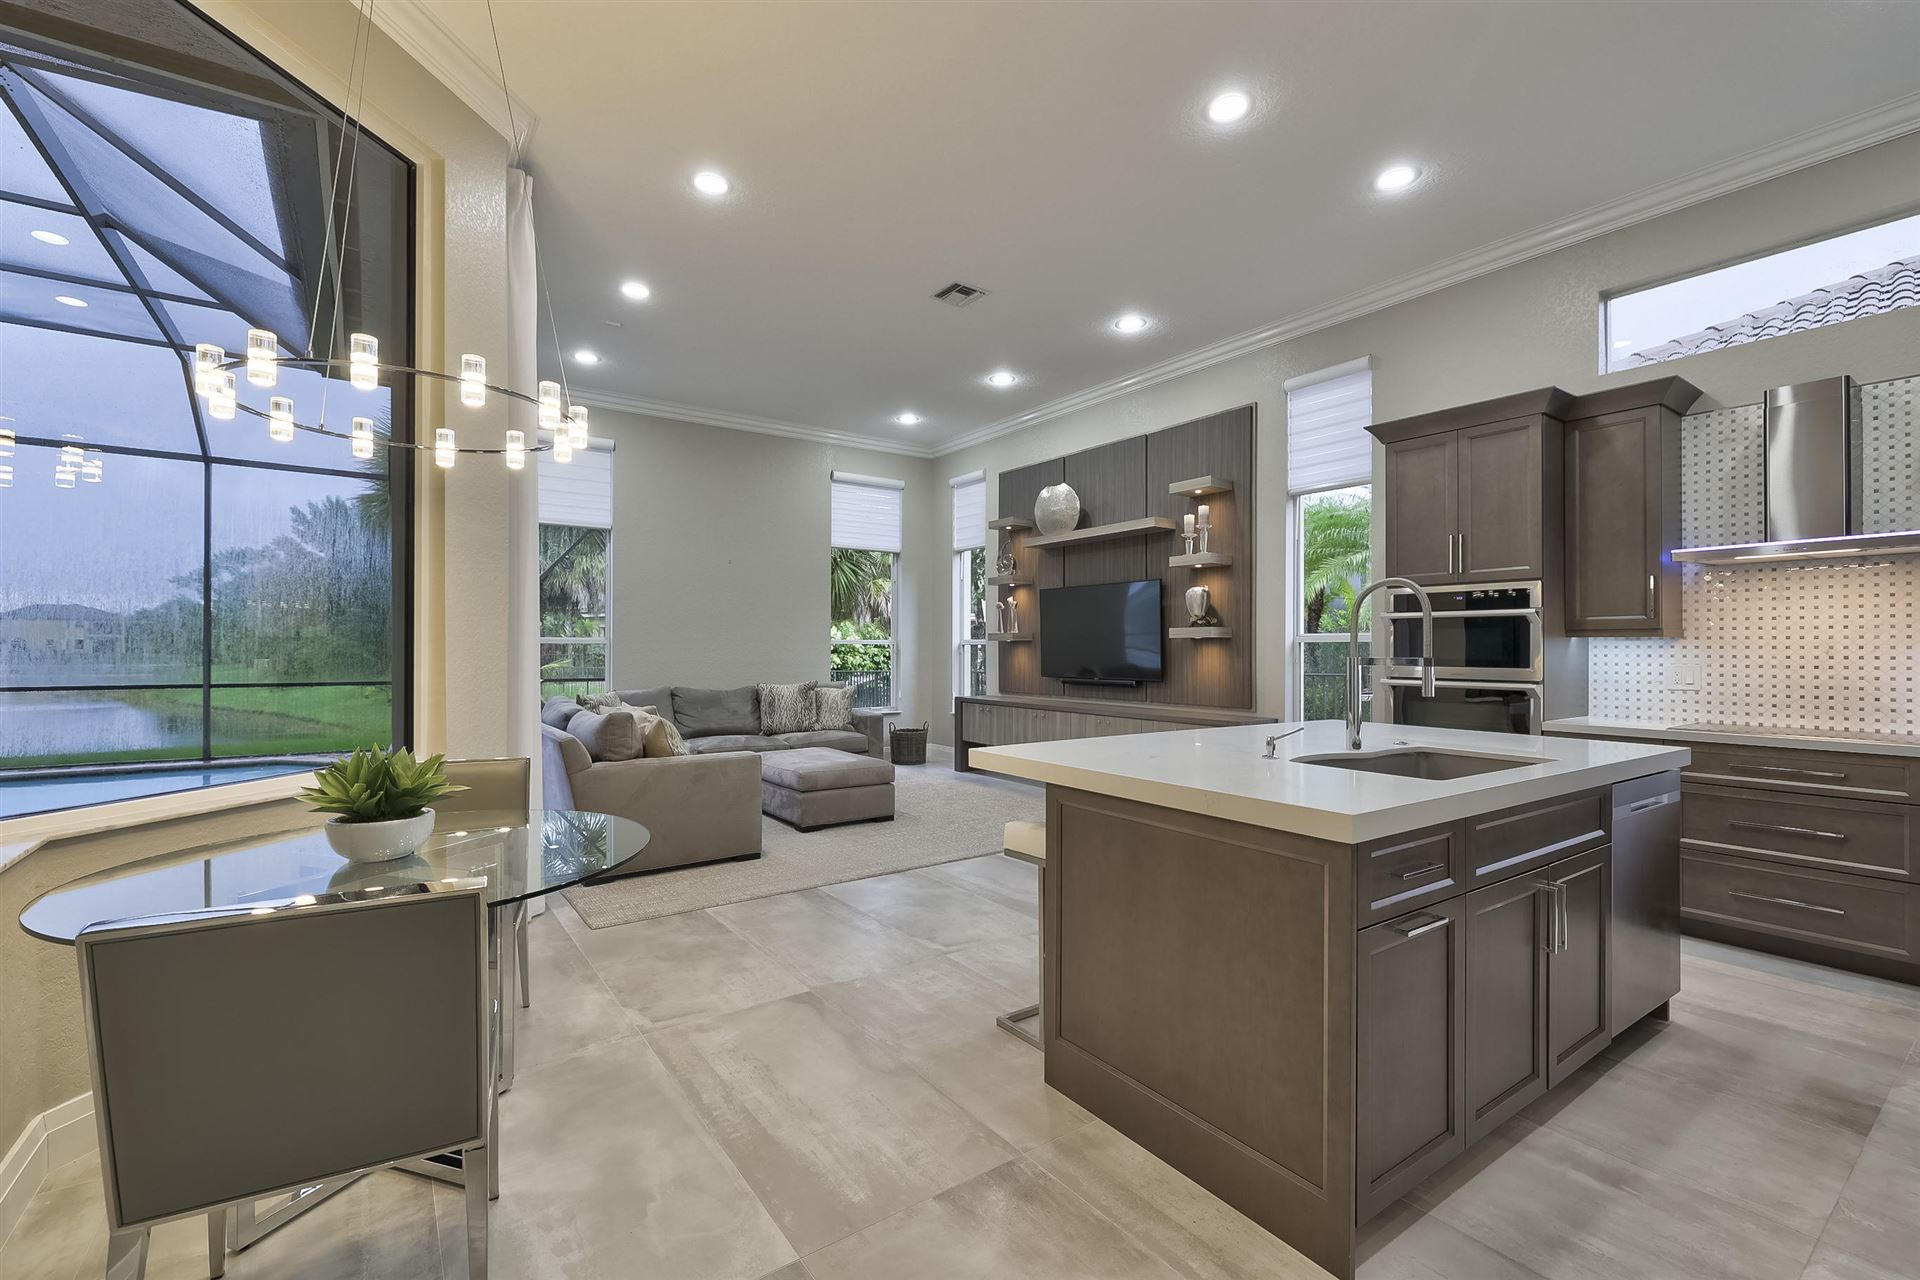 Photo of 12097 NW 76 Place, Parkland, FL 33076 (MLS # RX-10665013)